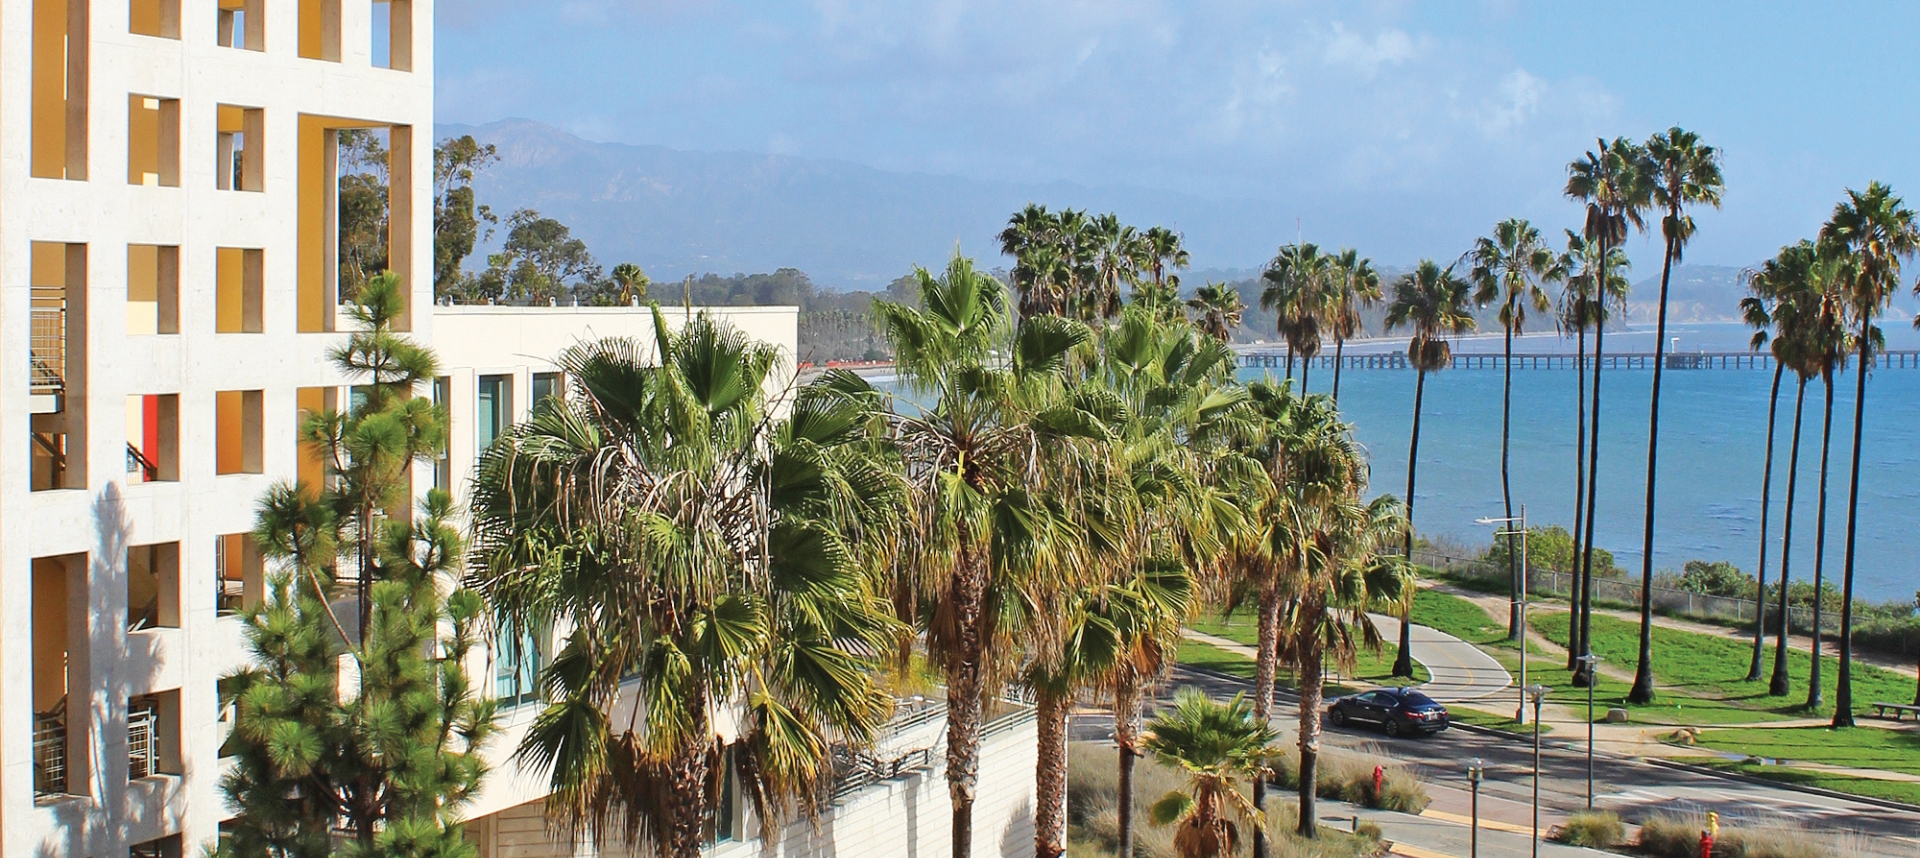 Campus building with palm trees and blue sky